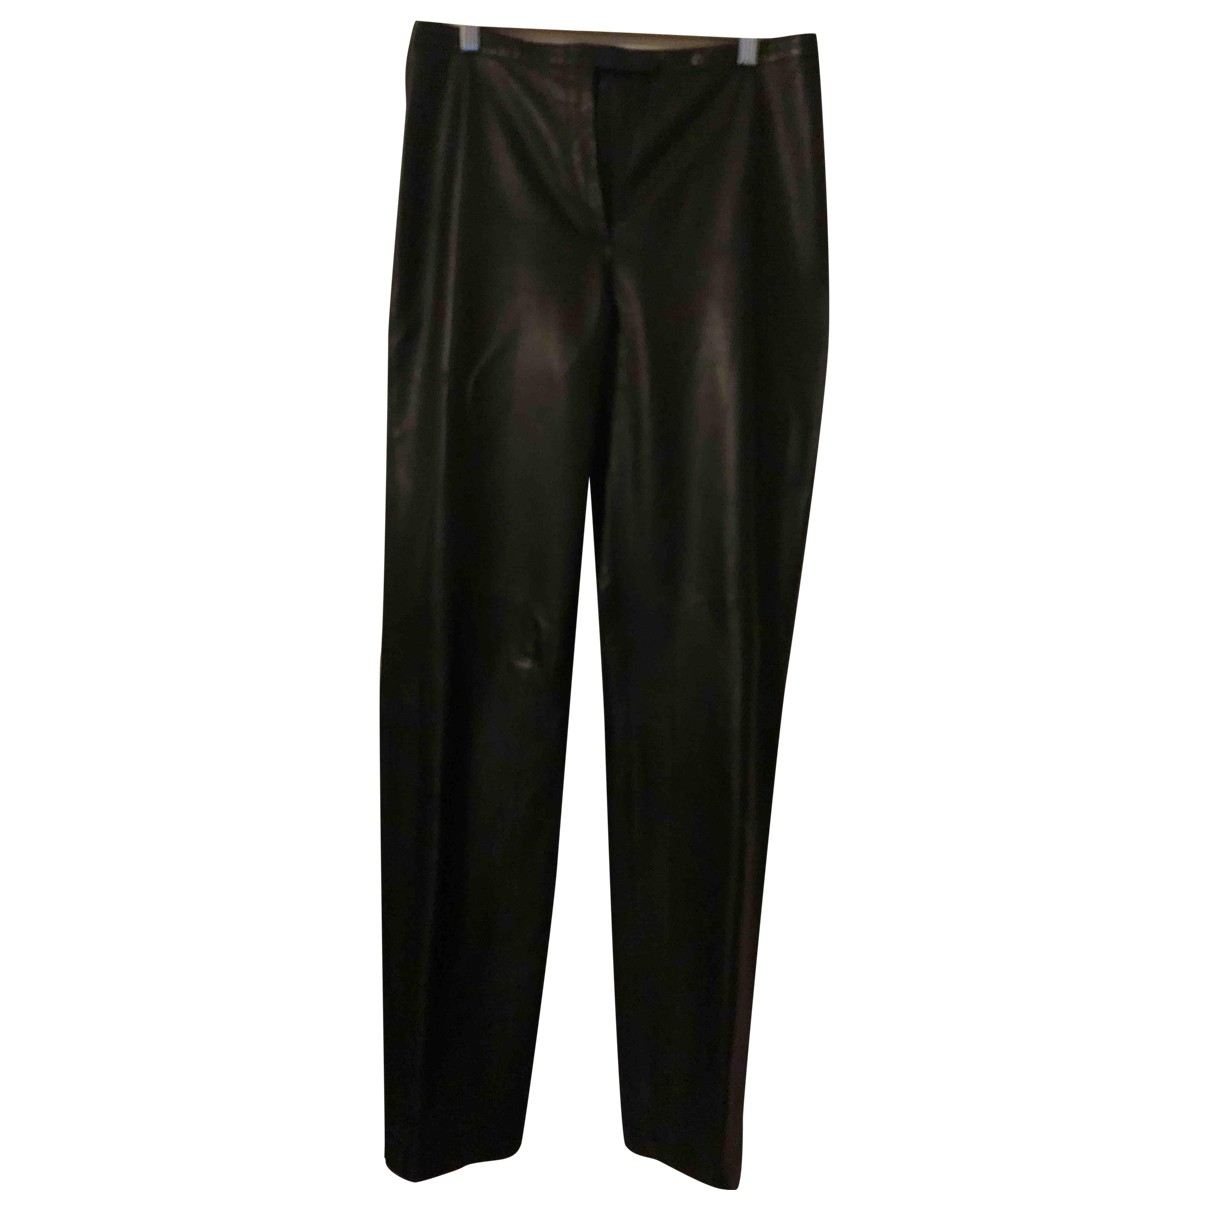 Faconnable \N Brown Leather Trousers for Women 40 FR